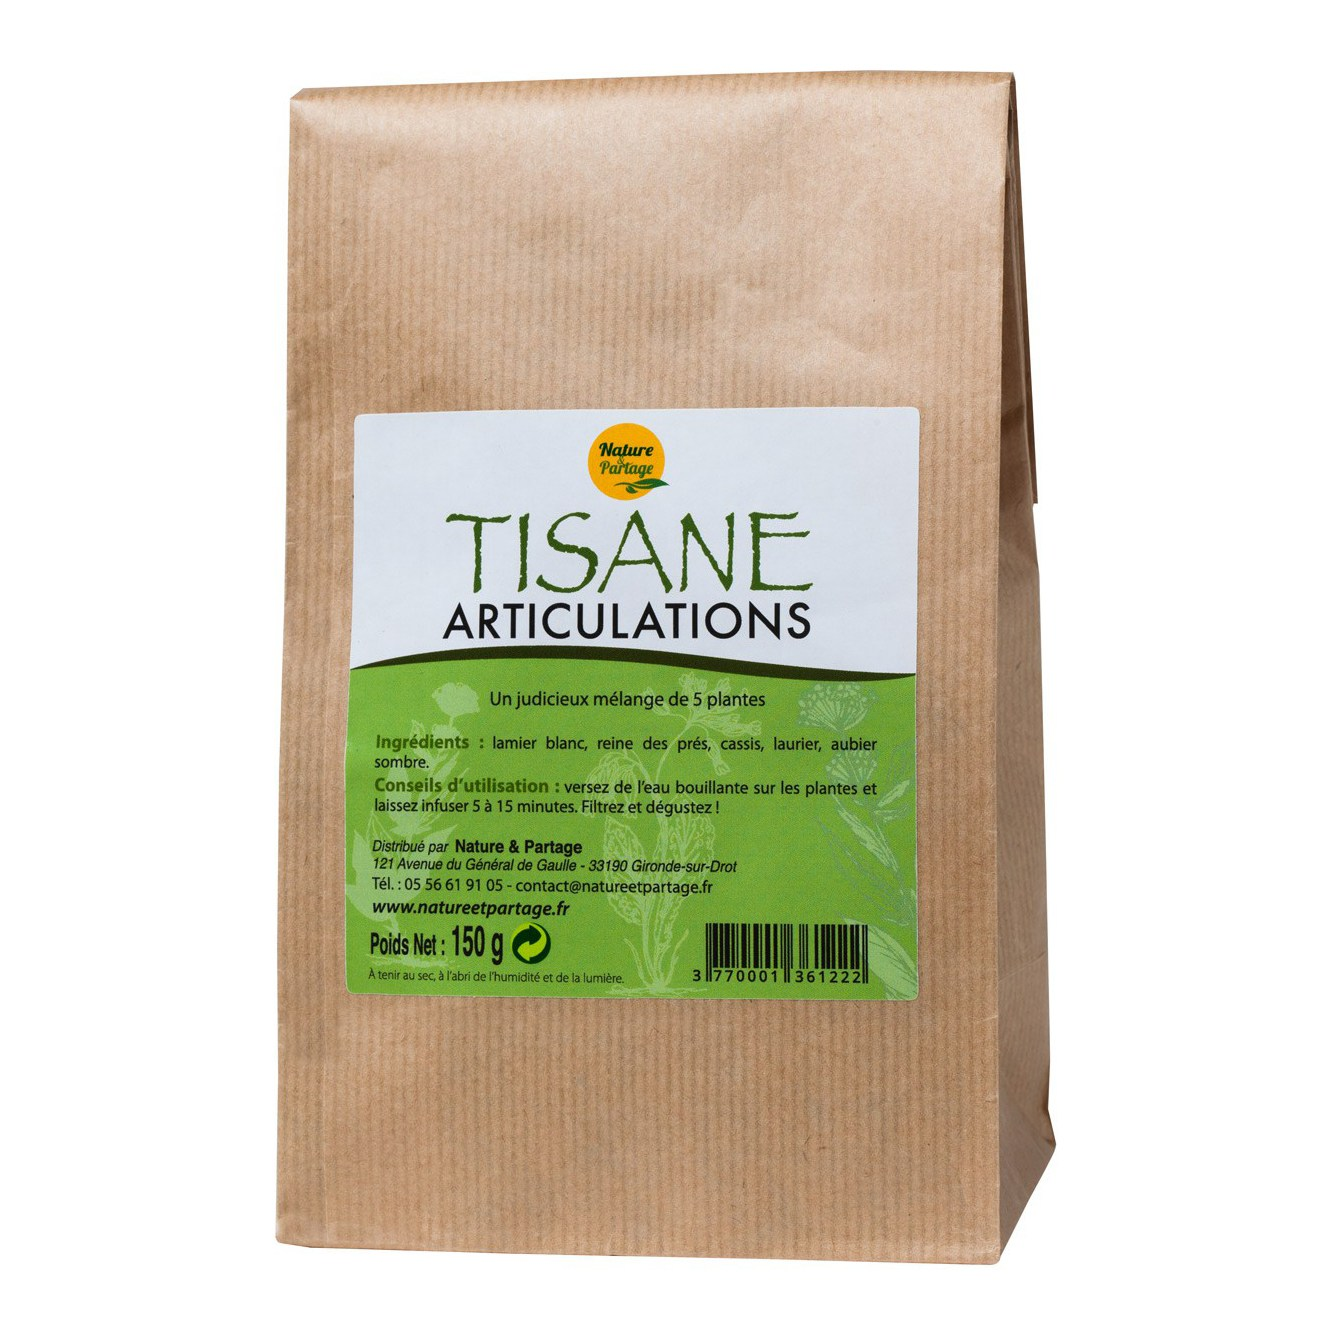 Tisane articulations - 150 g